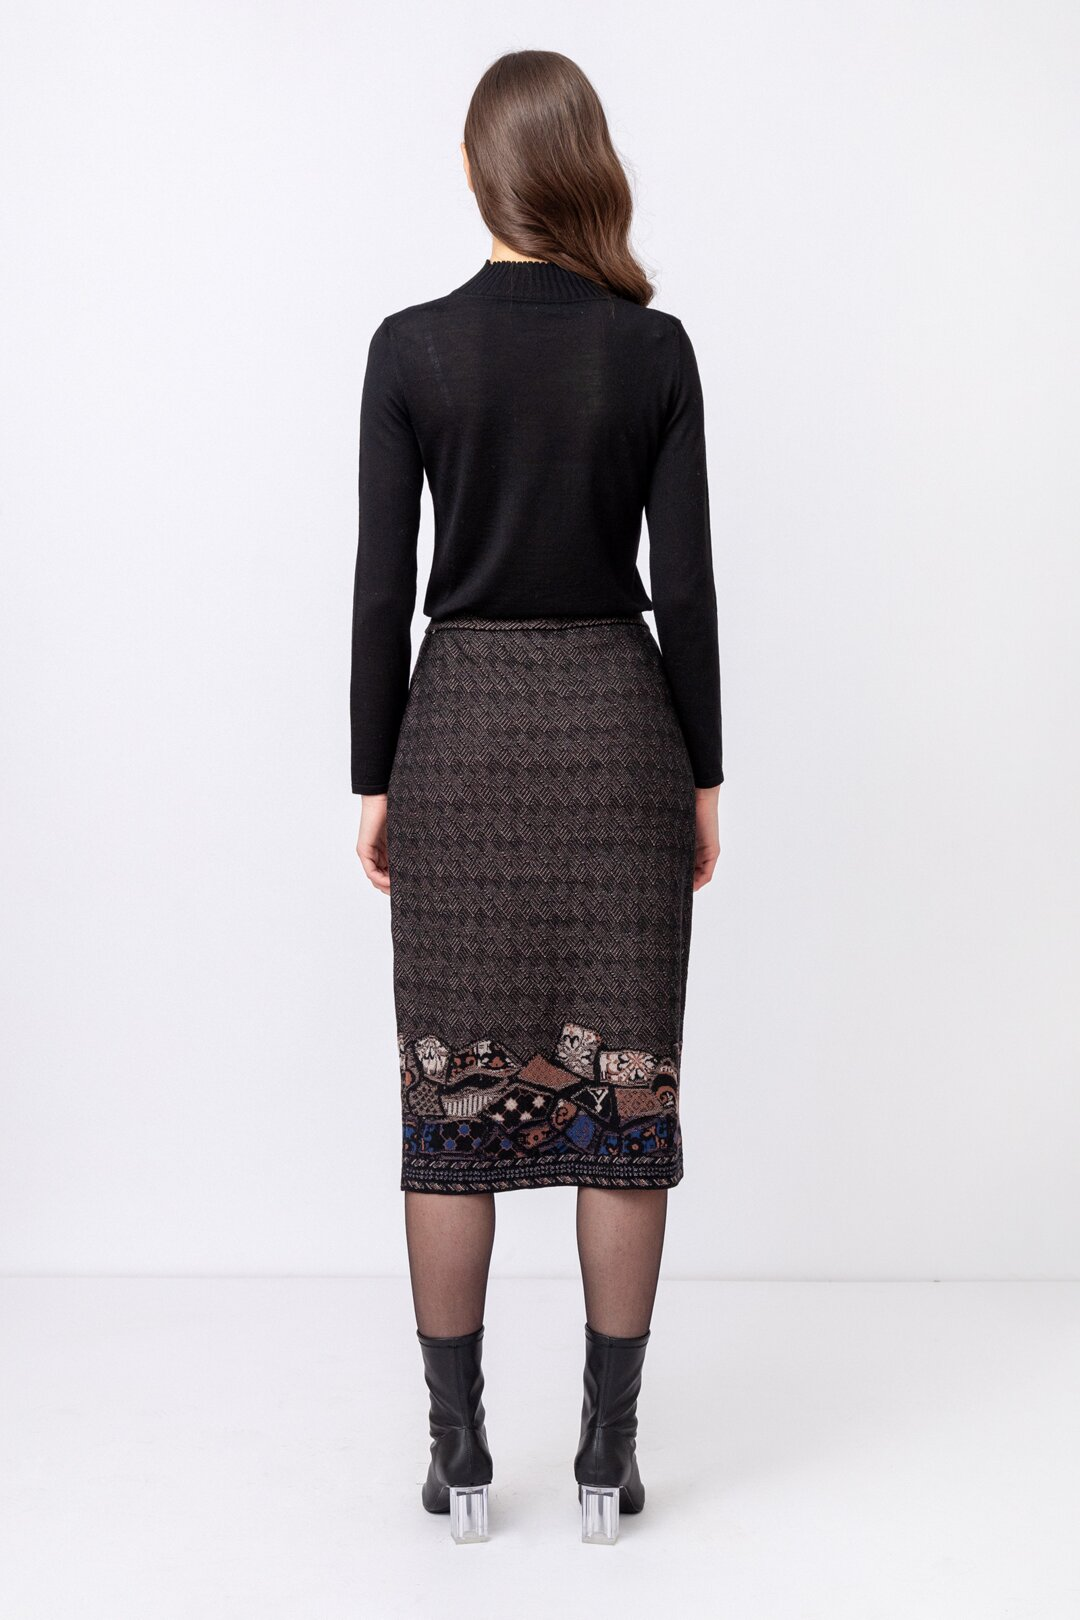 outfit-7c8a1098